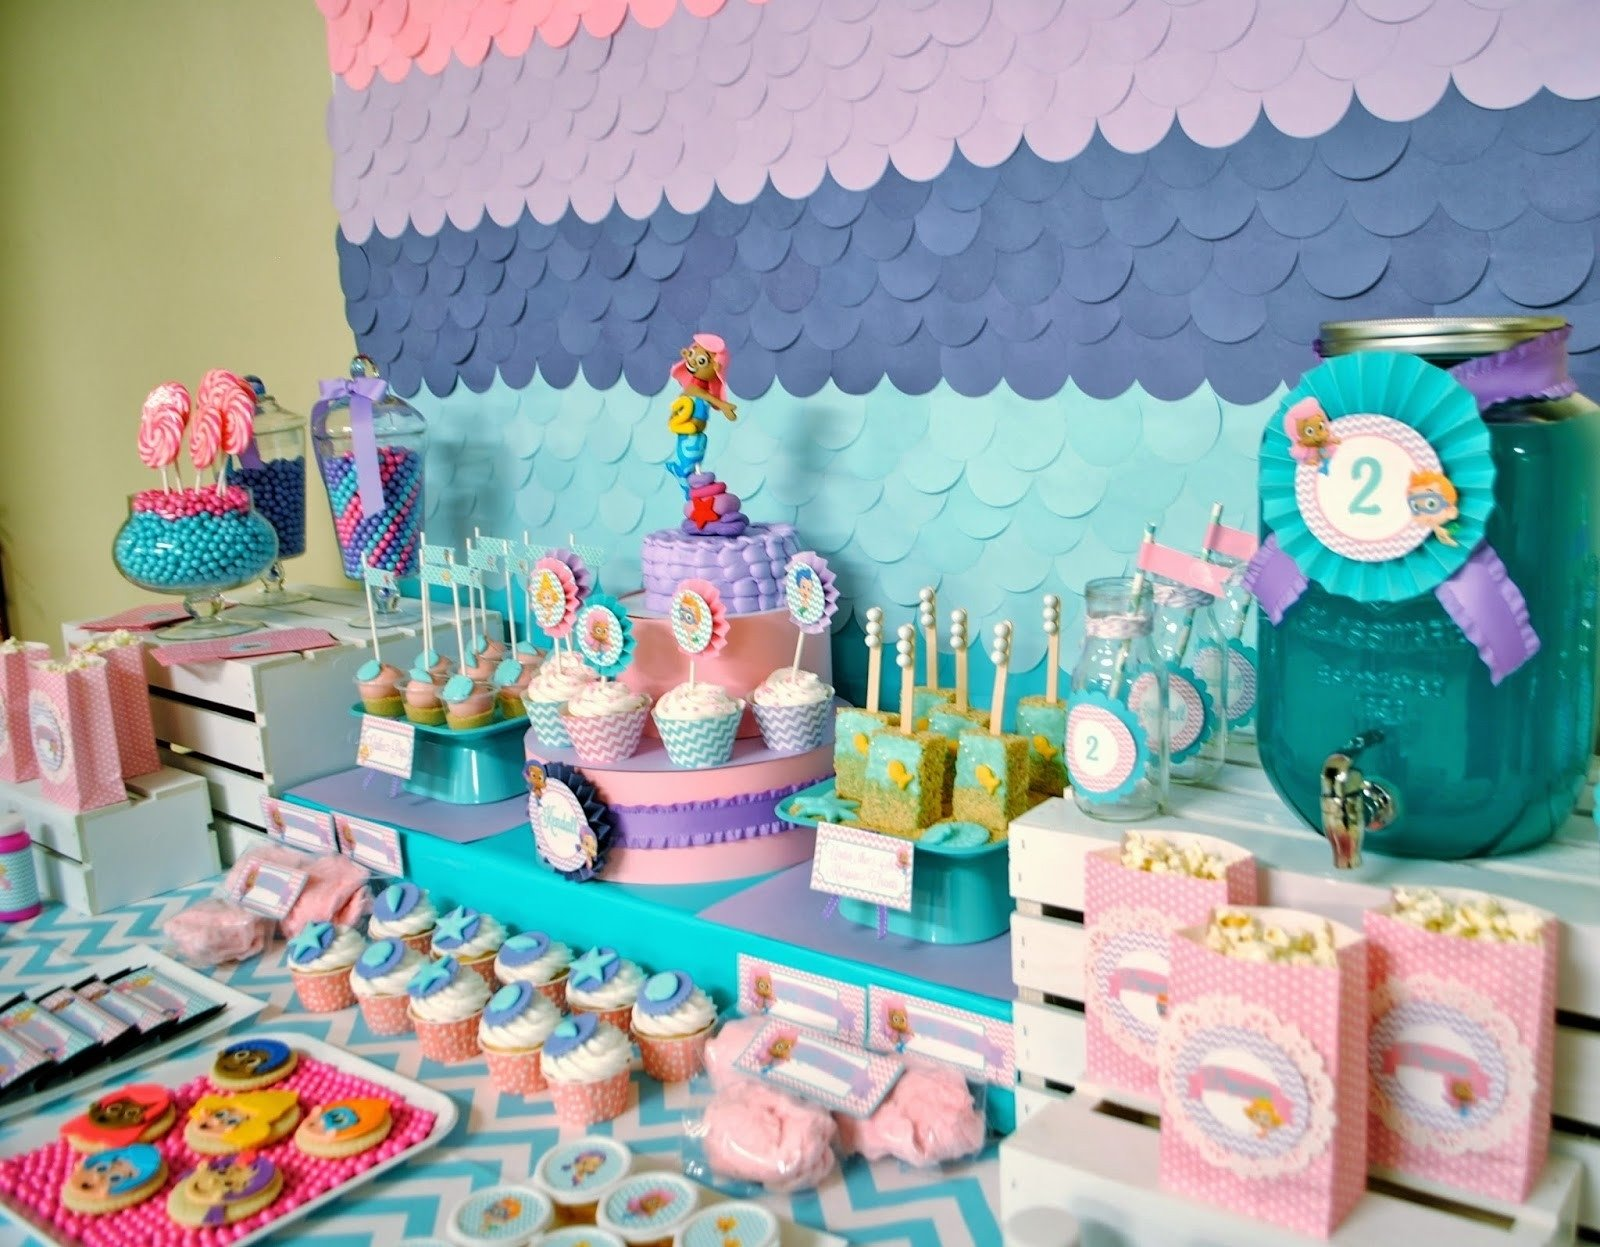 10 Gorgeous Unique 1St Birthday Ideas For Girls first birthday decoration ideas at home for girl unique best 25